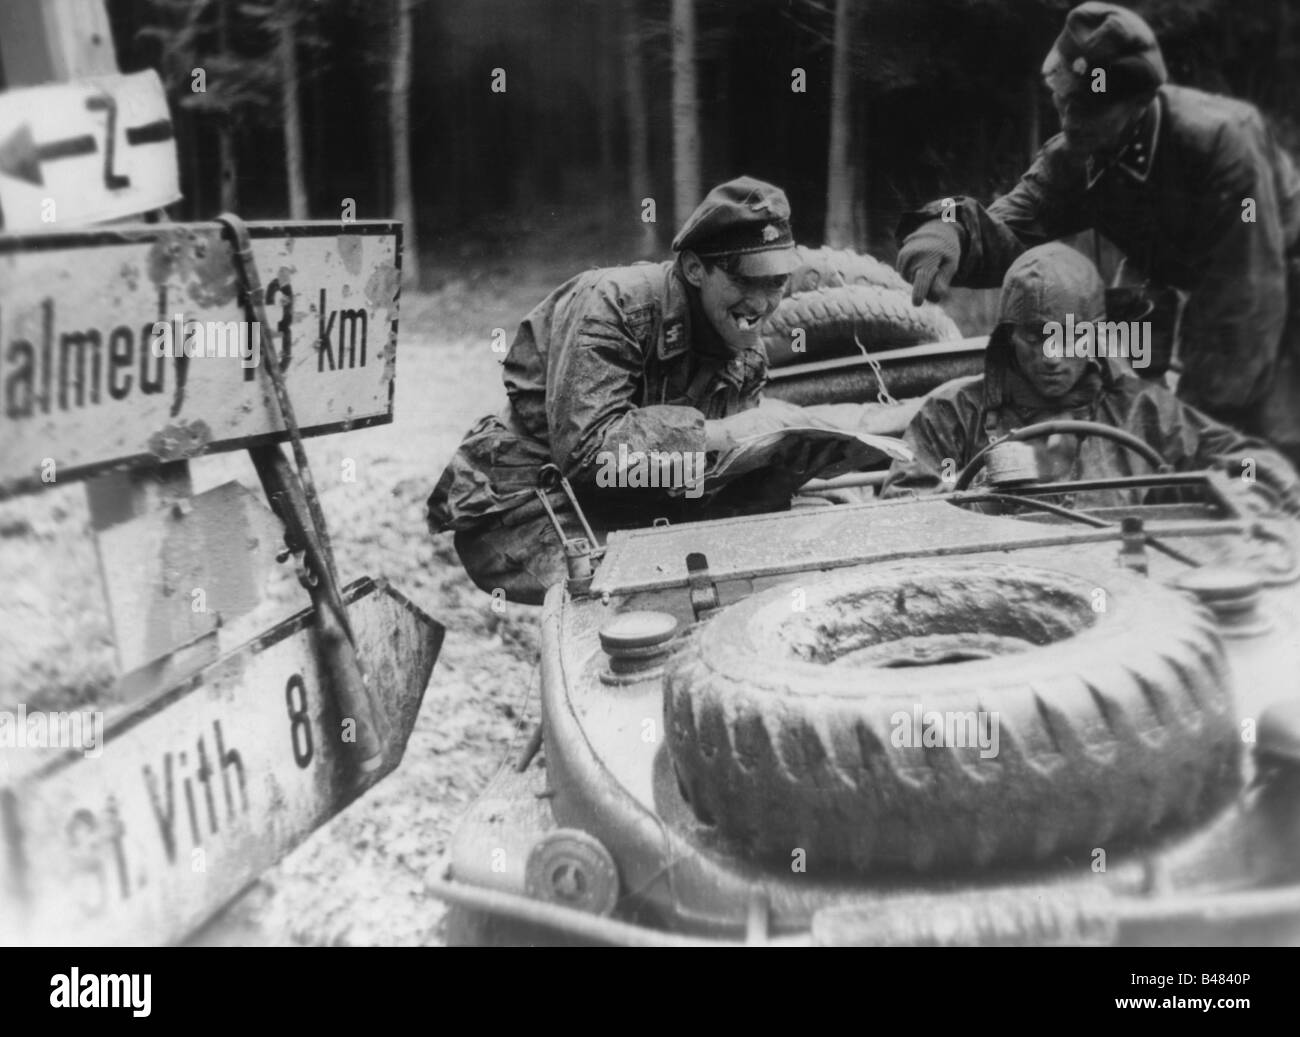 events, Second World War / WWII, Belgium, Battle of the Bulge, German advance 16.-27.12.1944, vanguard of Kampfgruppe Stock Photo